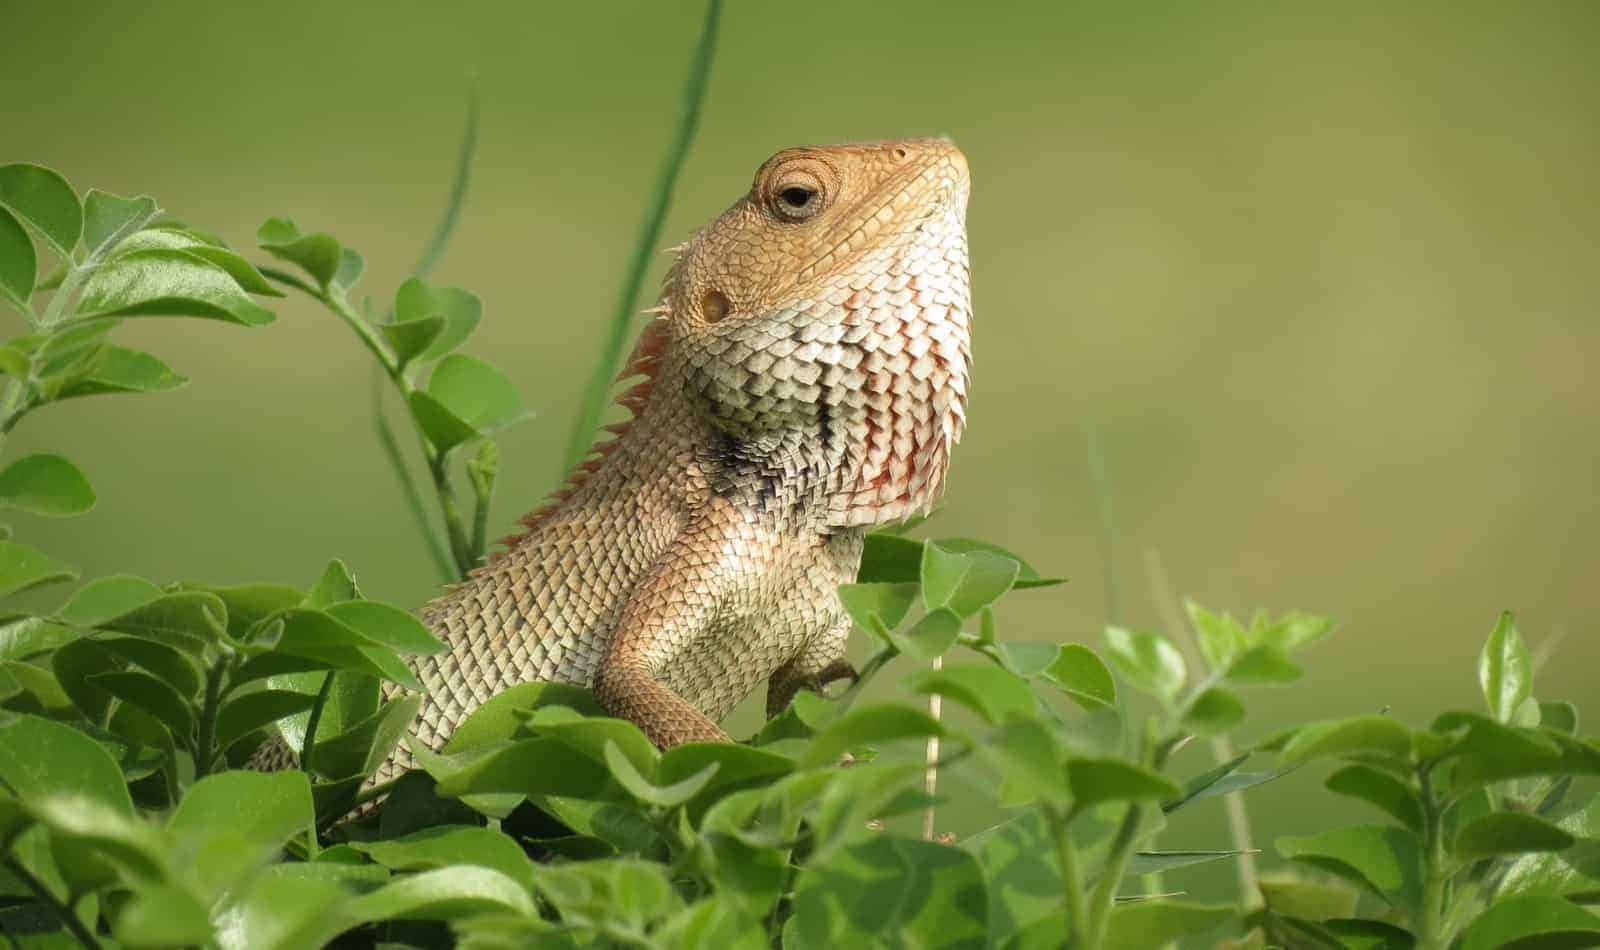 bearded dragon surrounded by grasses: can he eat nightcrawler?